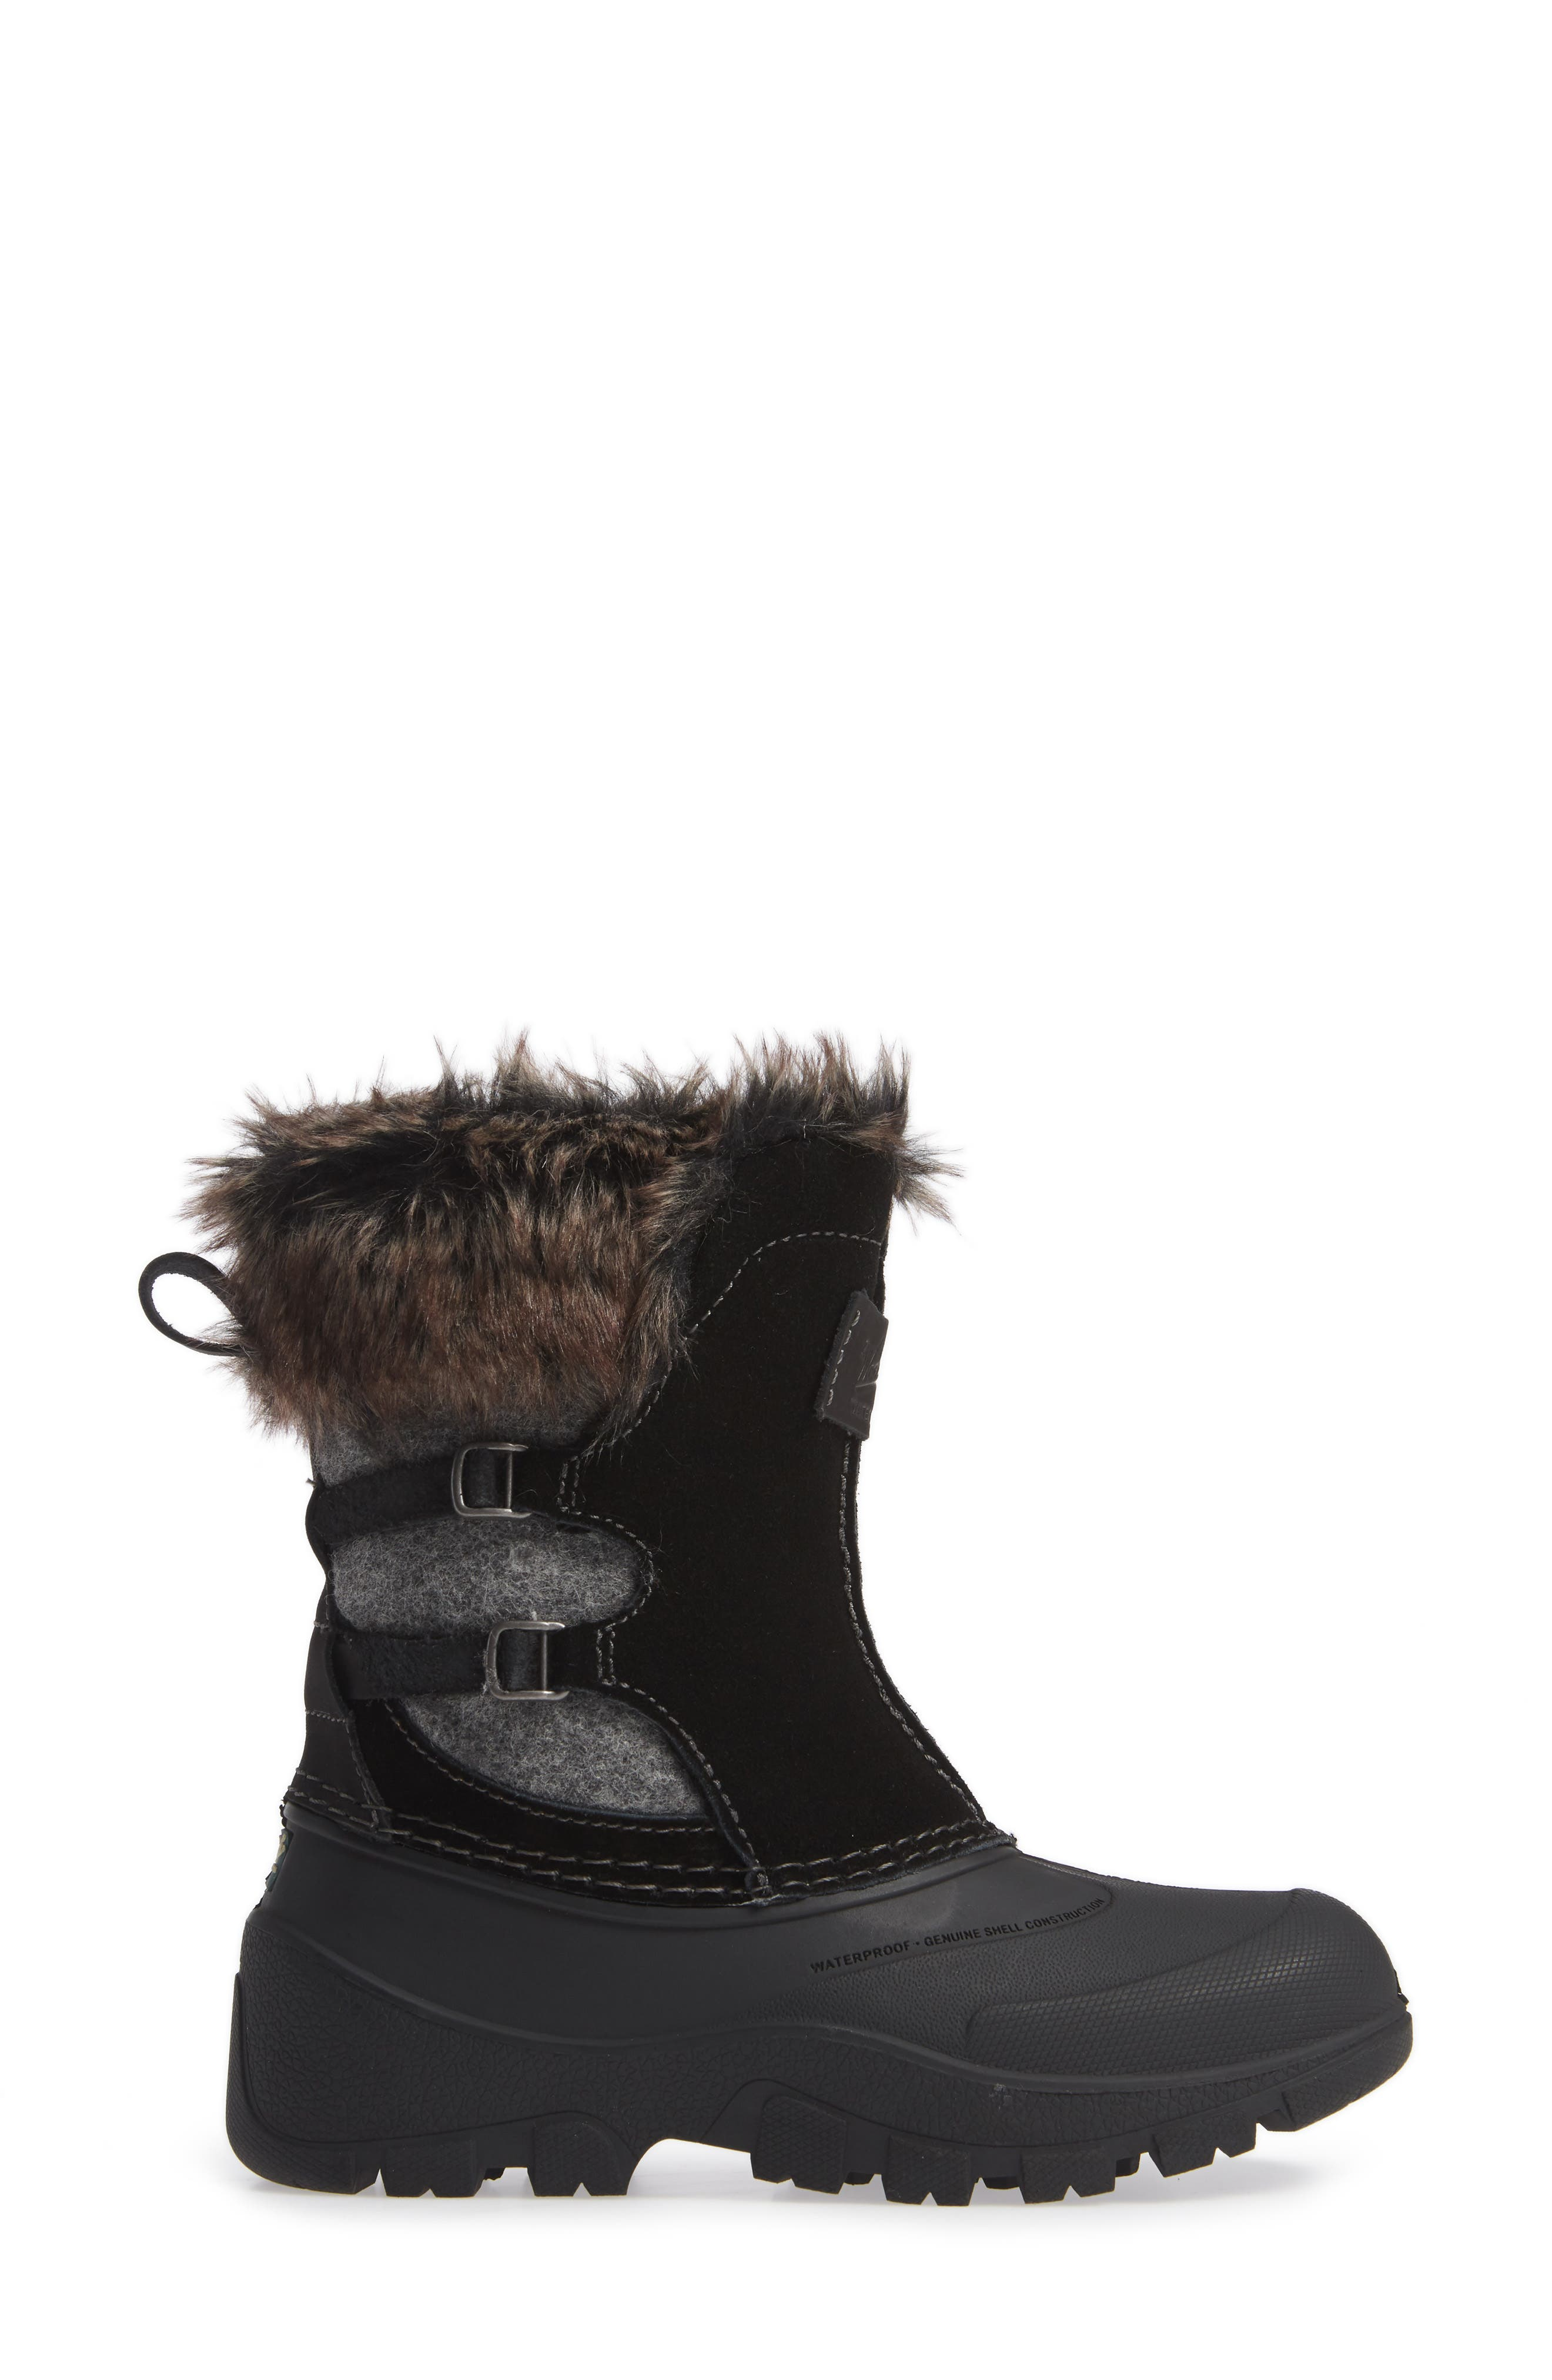 Icecat II Fully Wooly Waterproof Insulated Winter Boot,                             Alternate thumbnail 3, color,                             BLACK WOOL